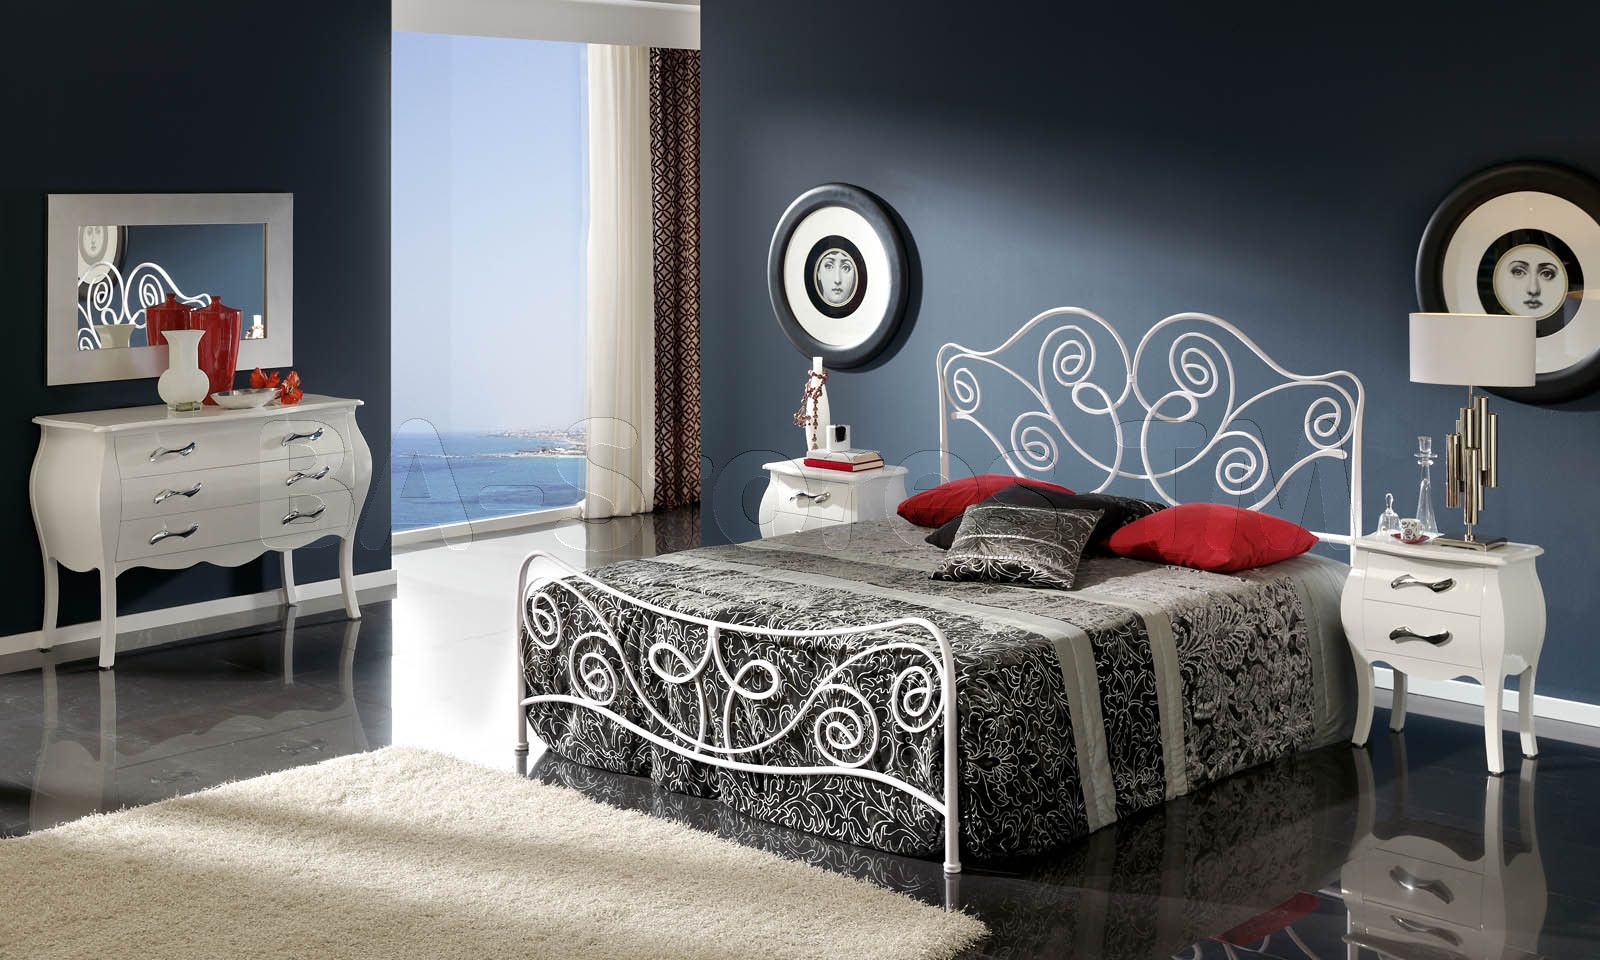 Astounding Pictures Of Arabian Bedroom Decor Design